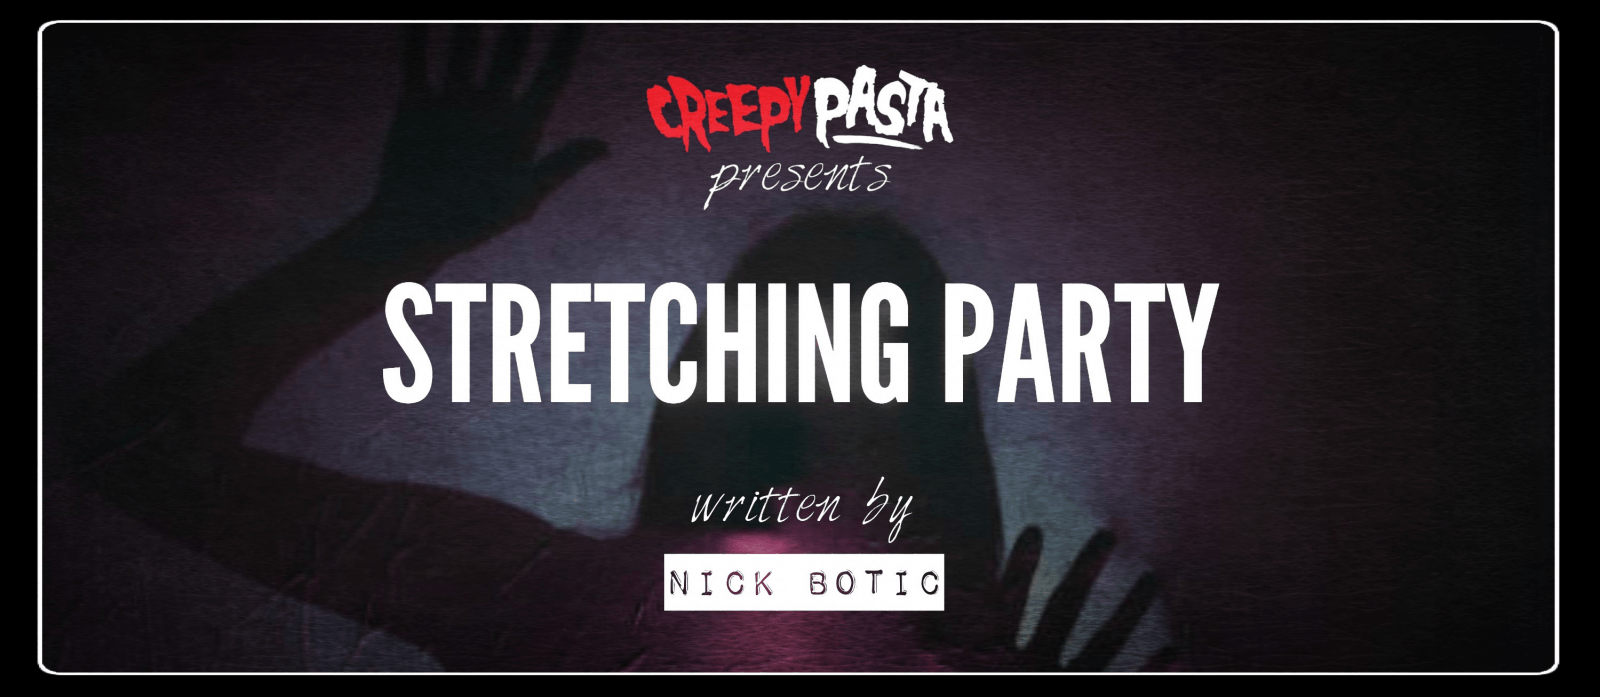 Stretching Party Creepypasta - Stretching - Party nobody